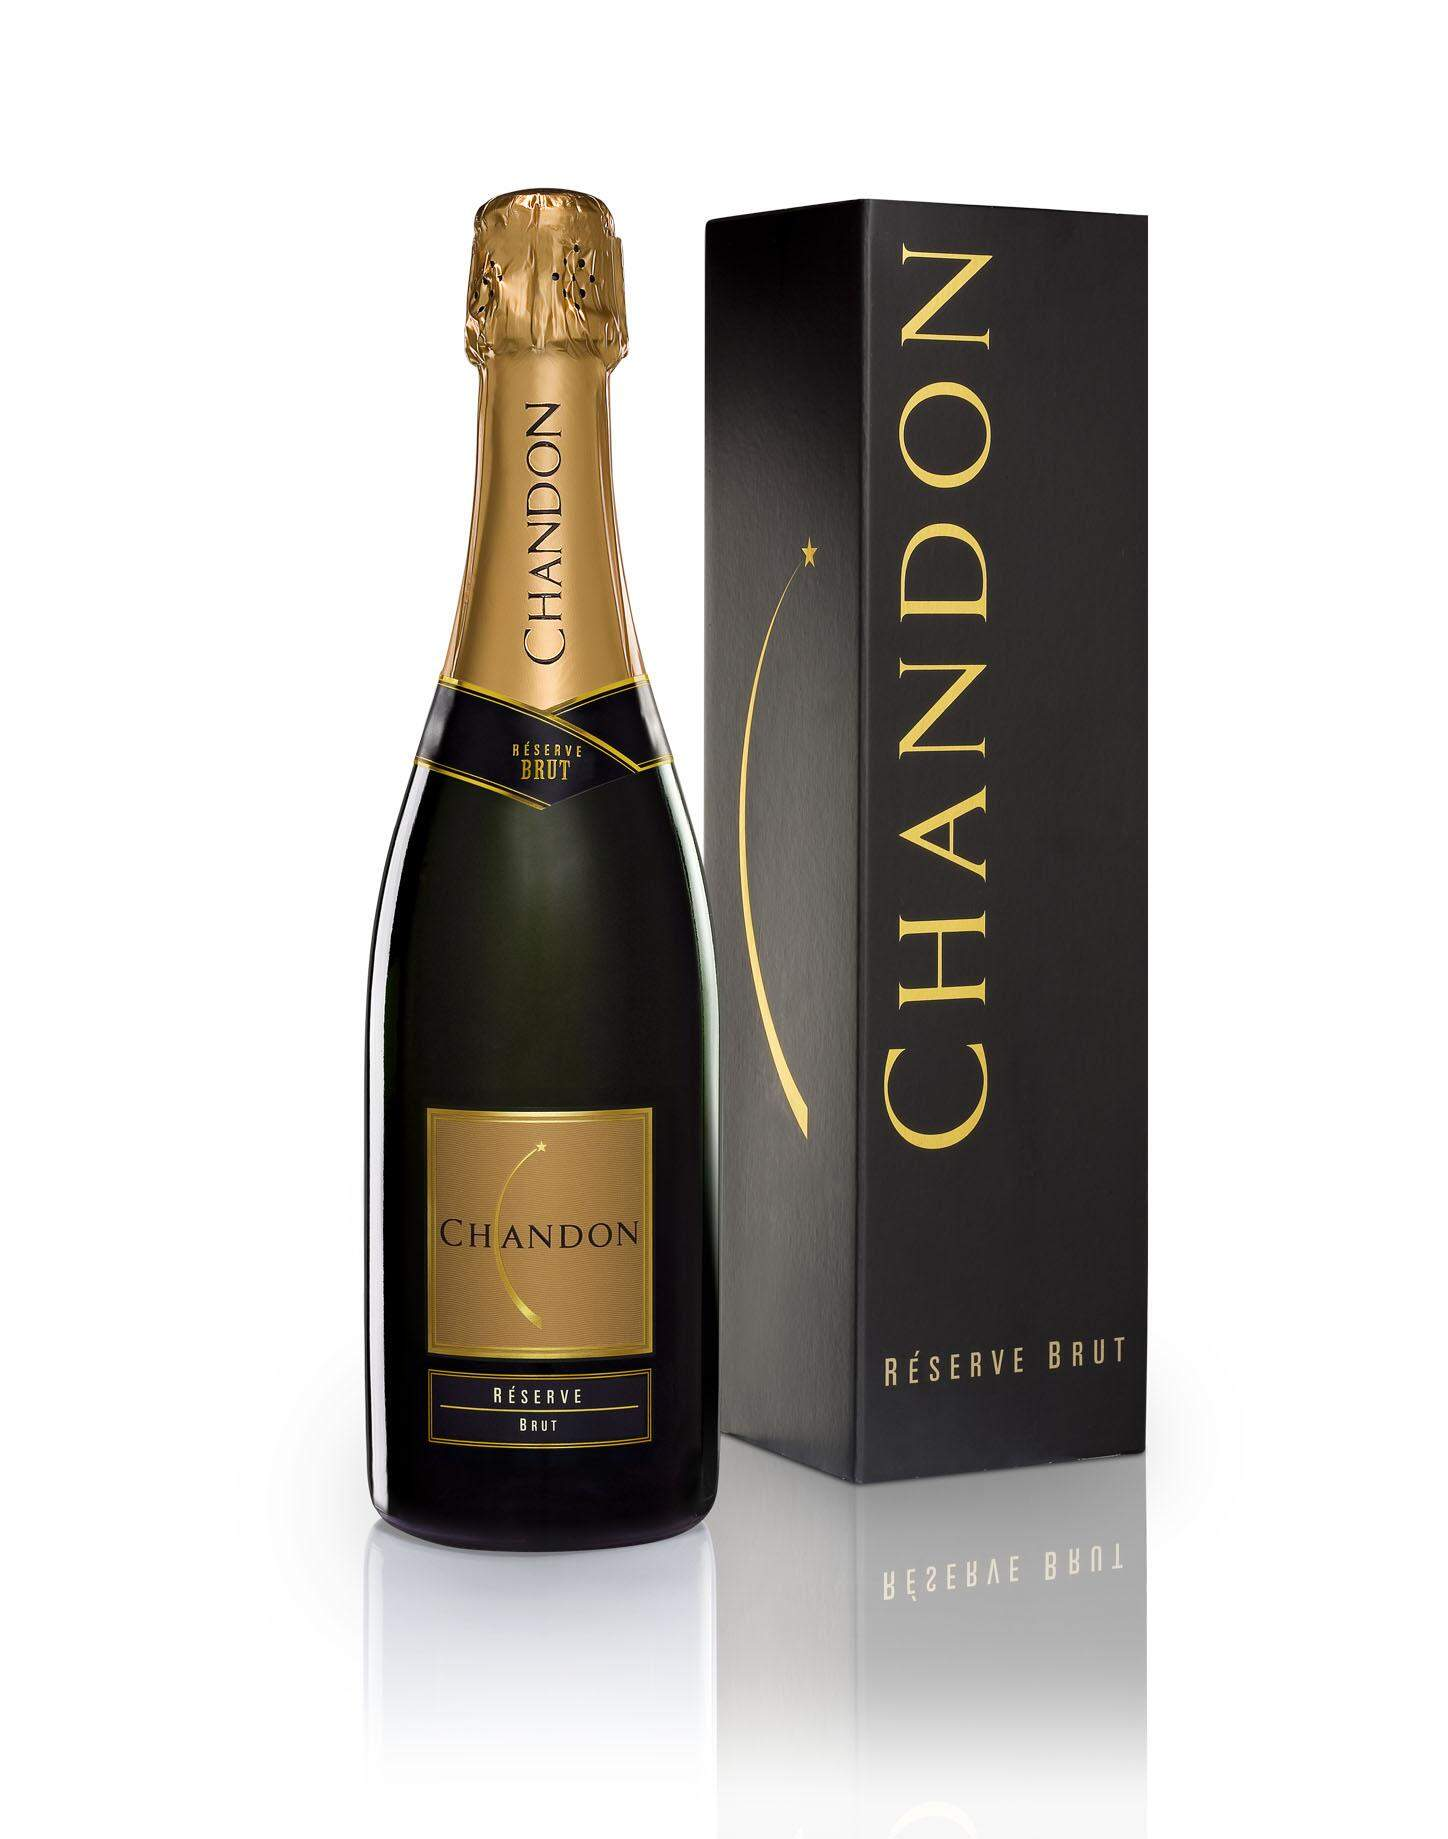 Espumante Chandon Reserve Brut 750ml.